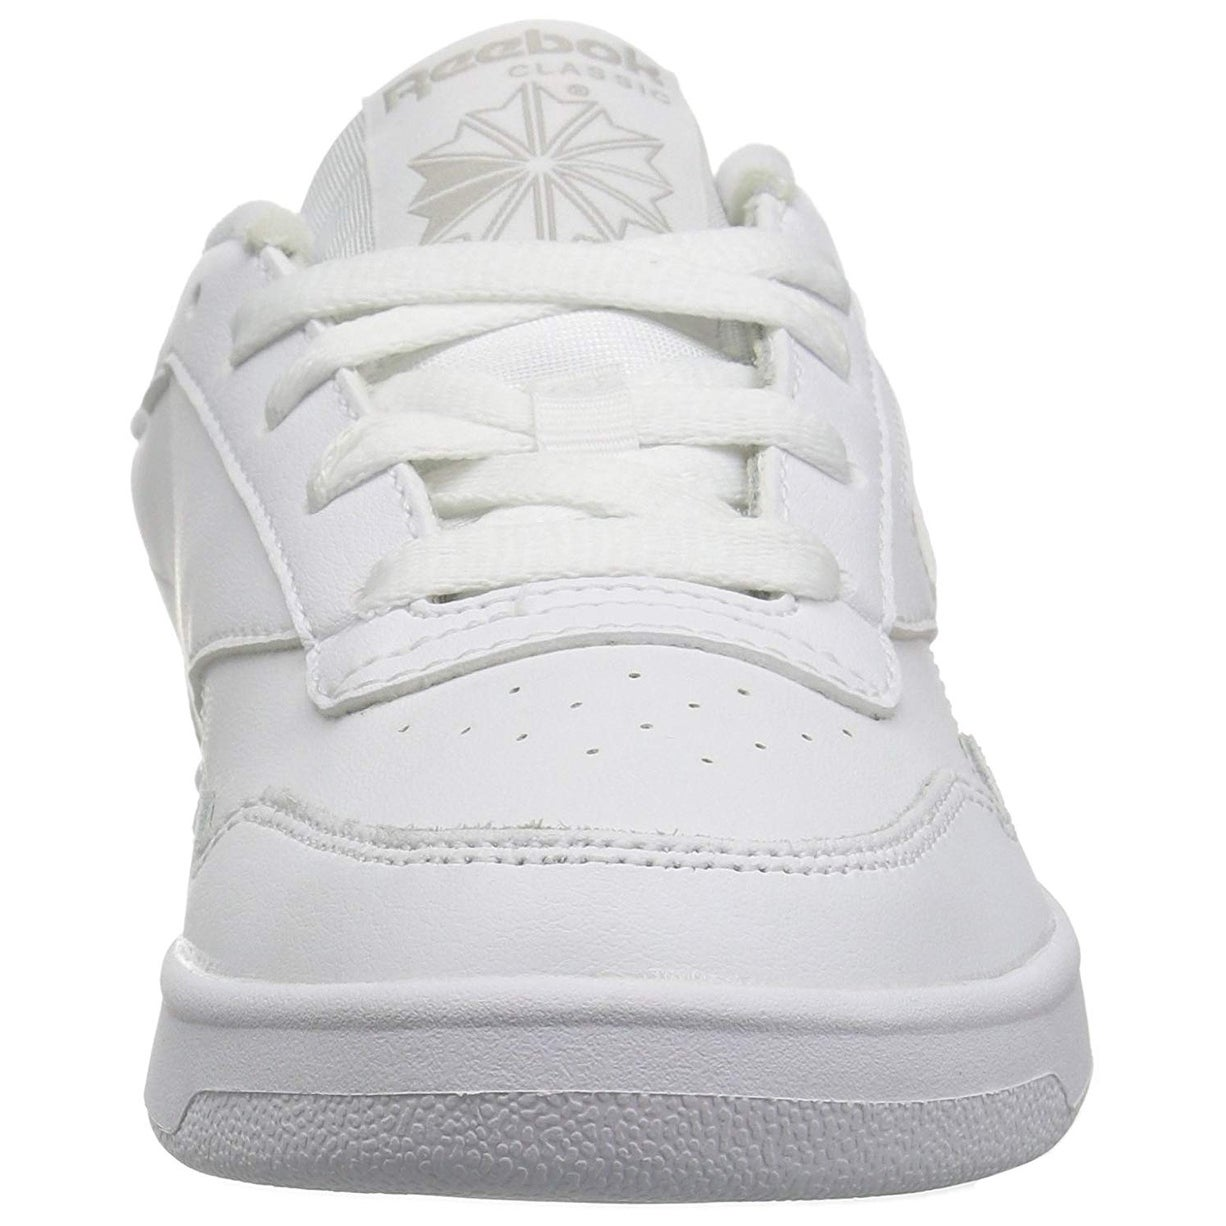 69c1c61a15ca Shop Reebok Womens Club Memt Low Top Lace Up Fashion Sneakers - Free  Shipping On Orders Over  45 - Overstock.com - 21720360